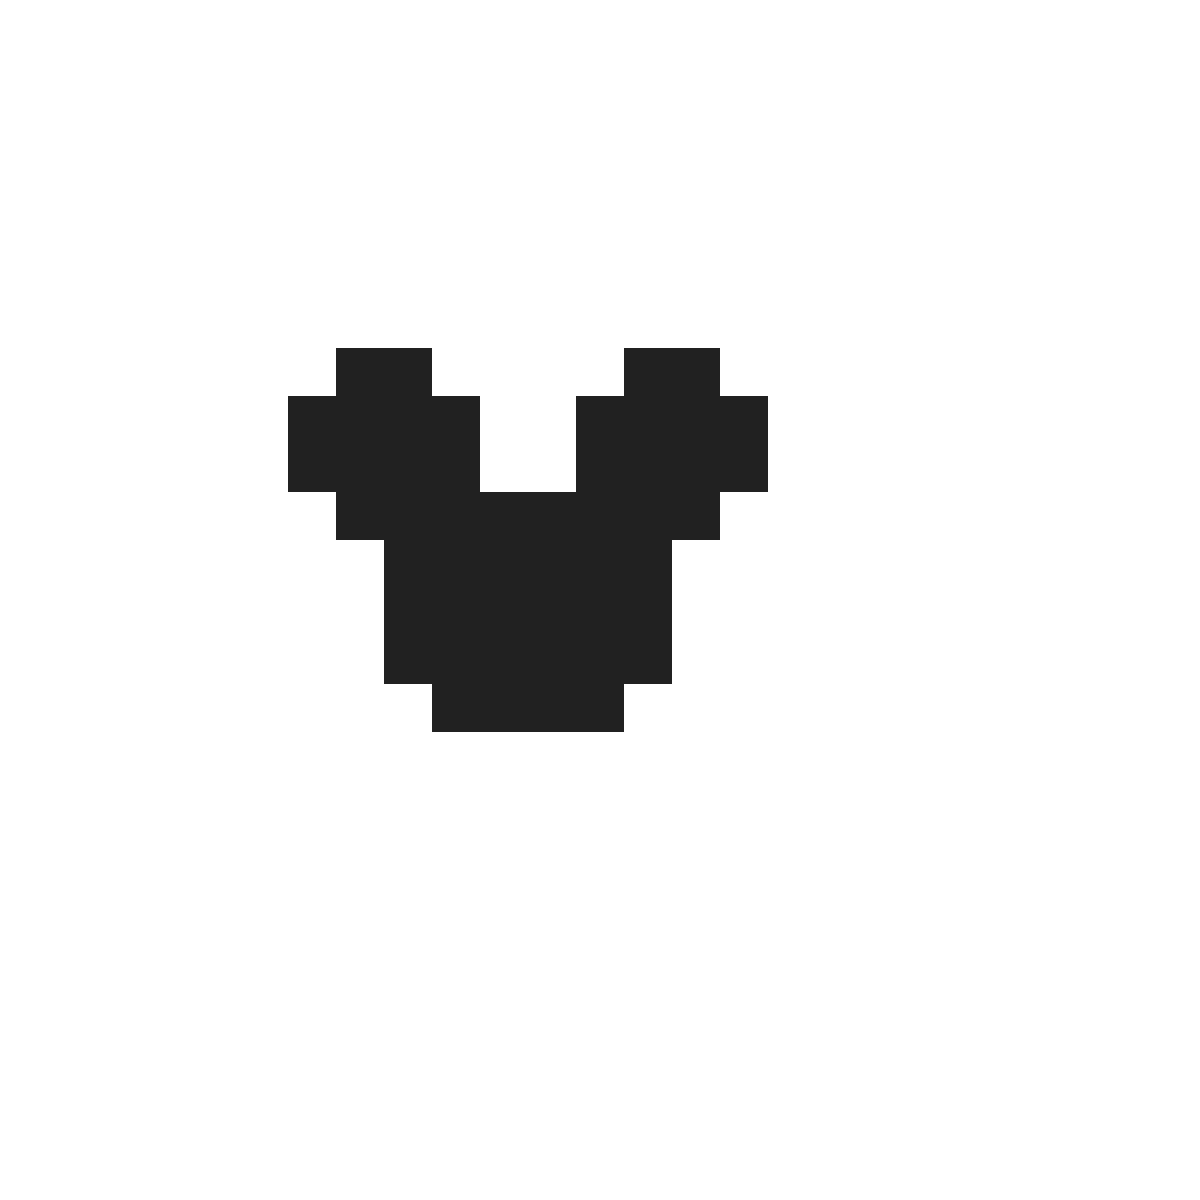 Mickey Mouse Pixel Art pixilart - mickey mouse logo by mellllllllll